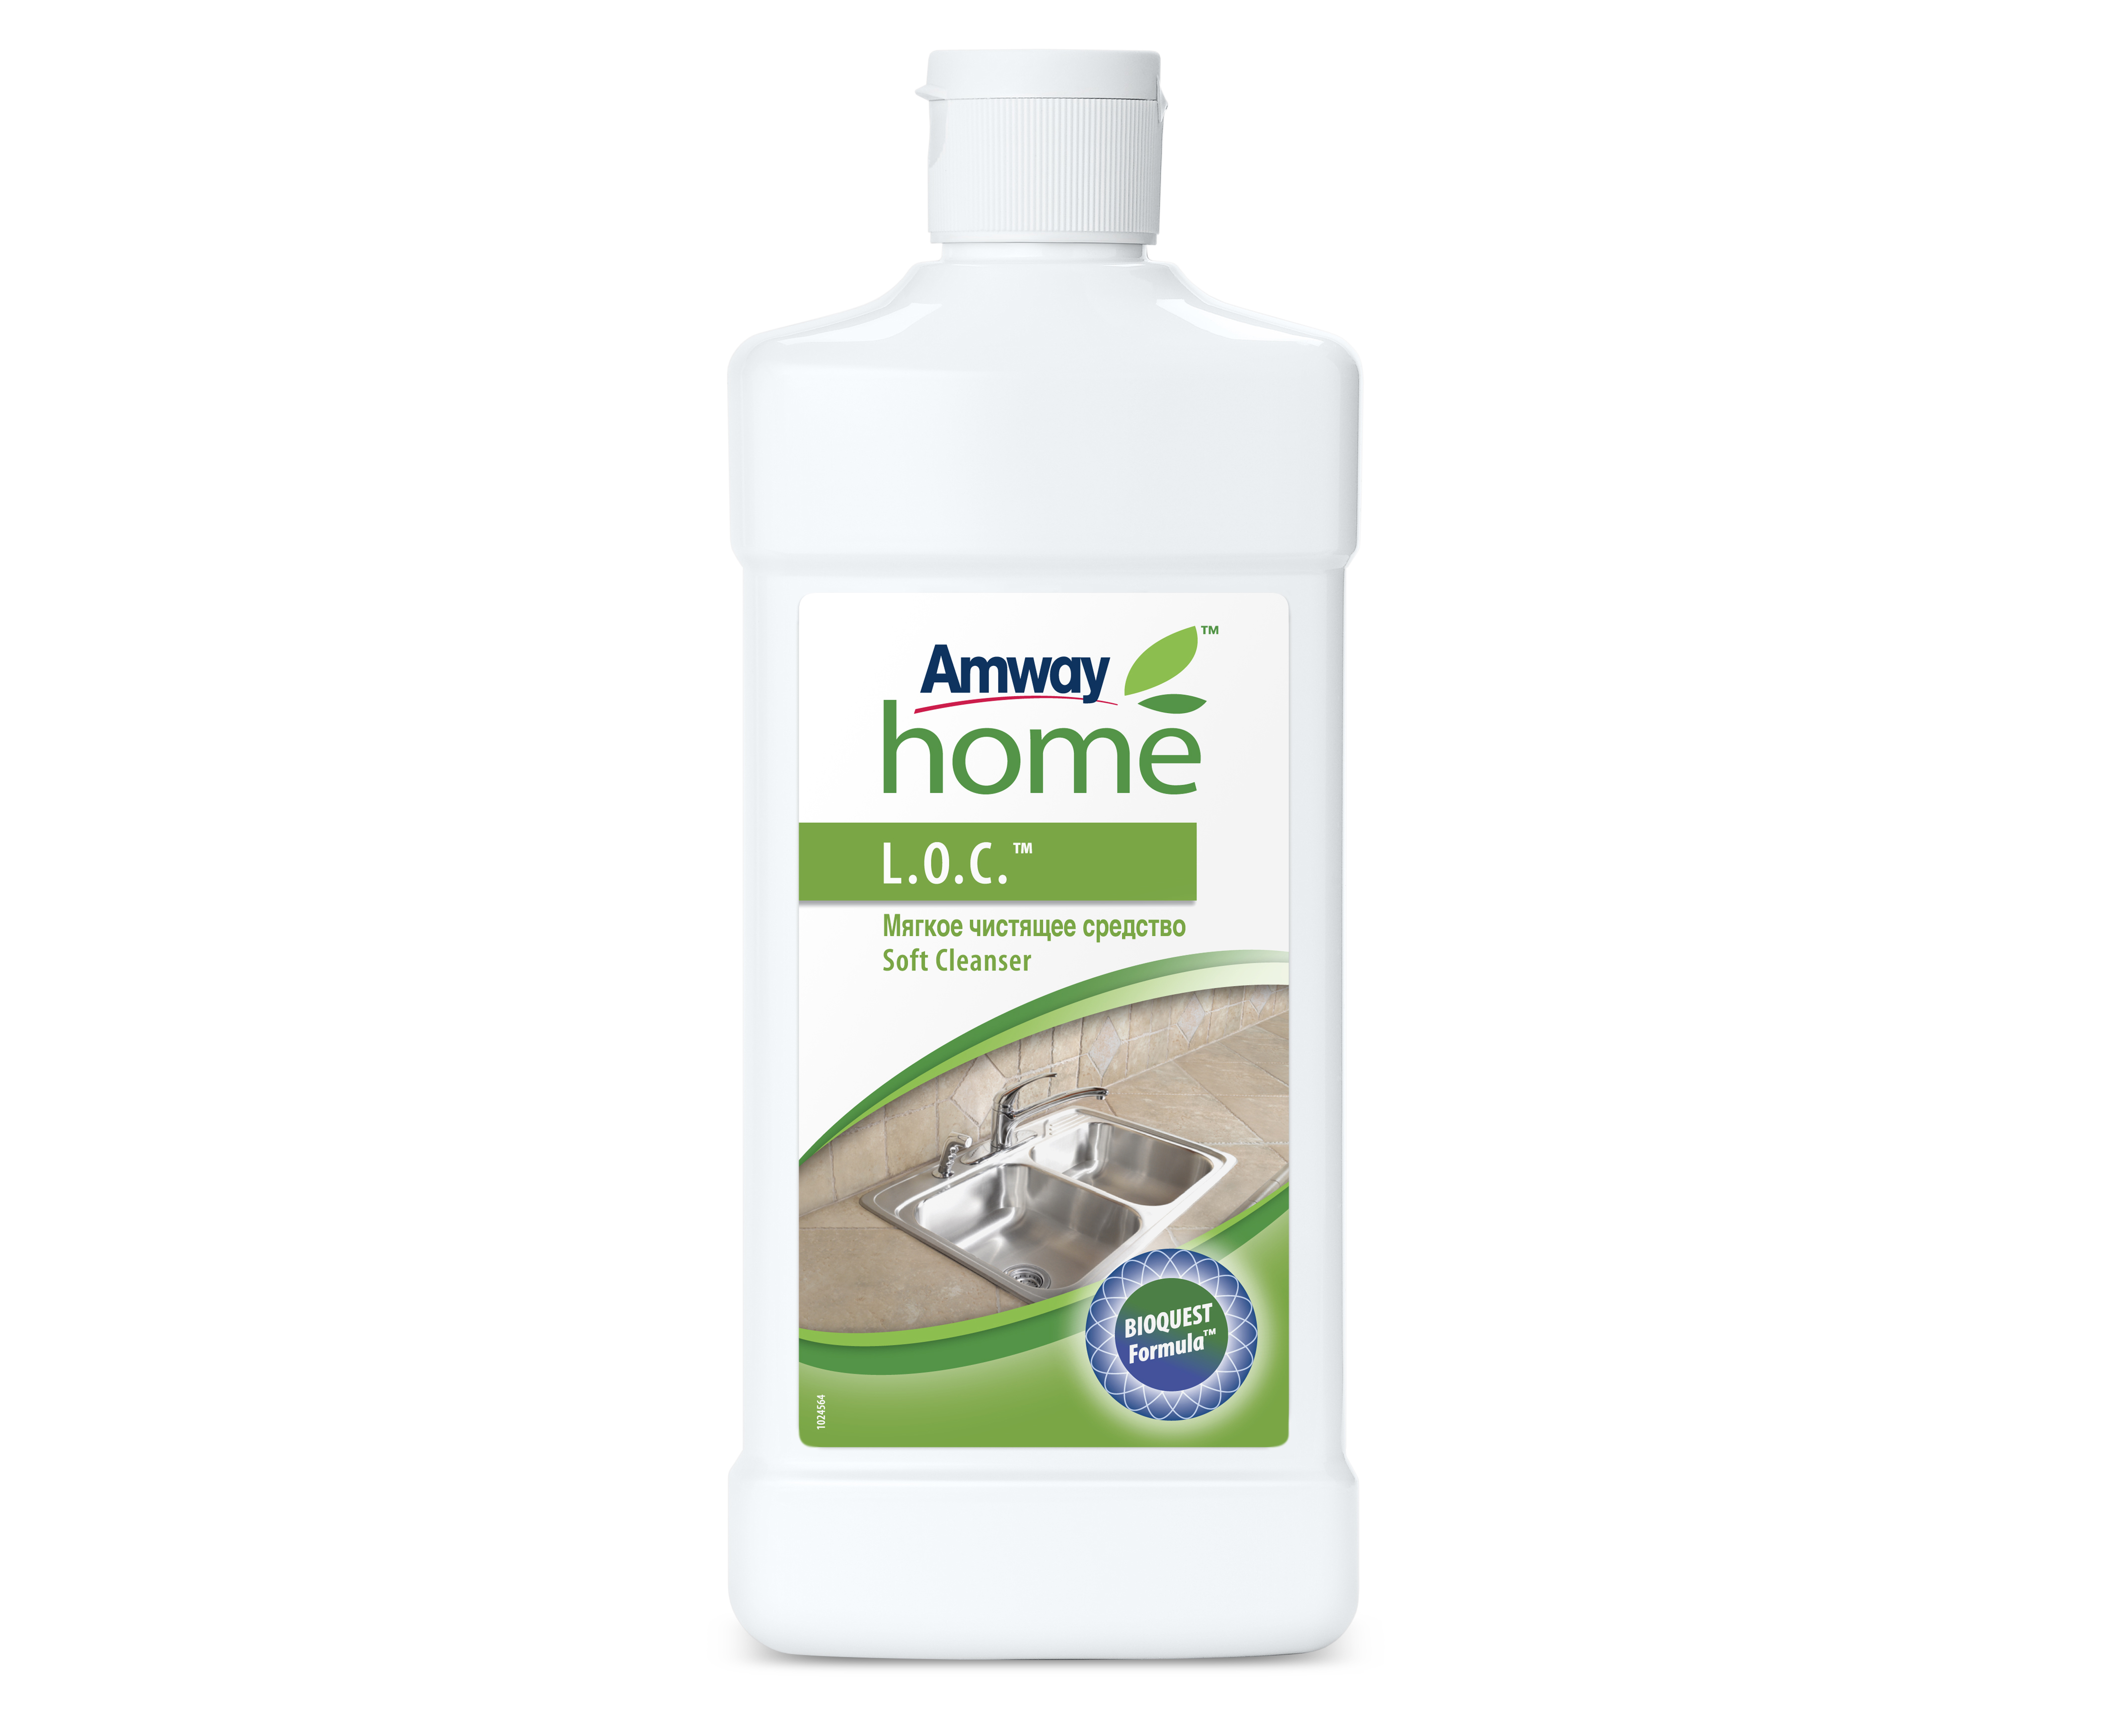 Amway L.O.C. Soft Cleanser